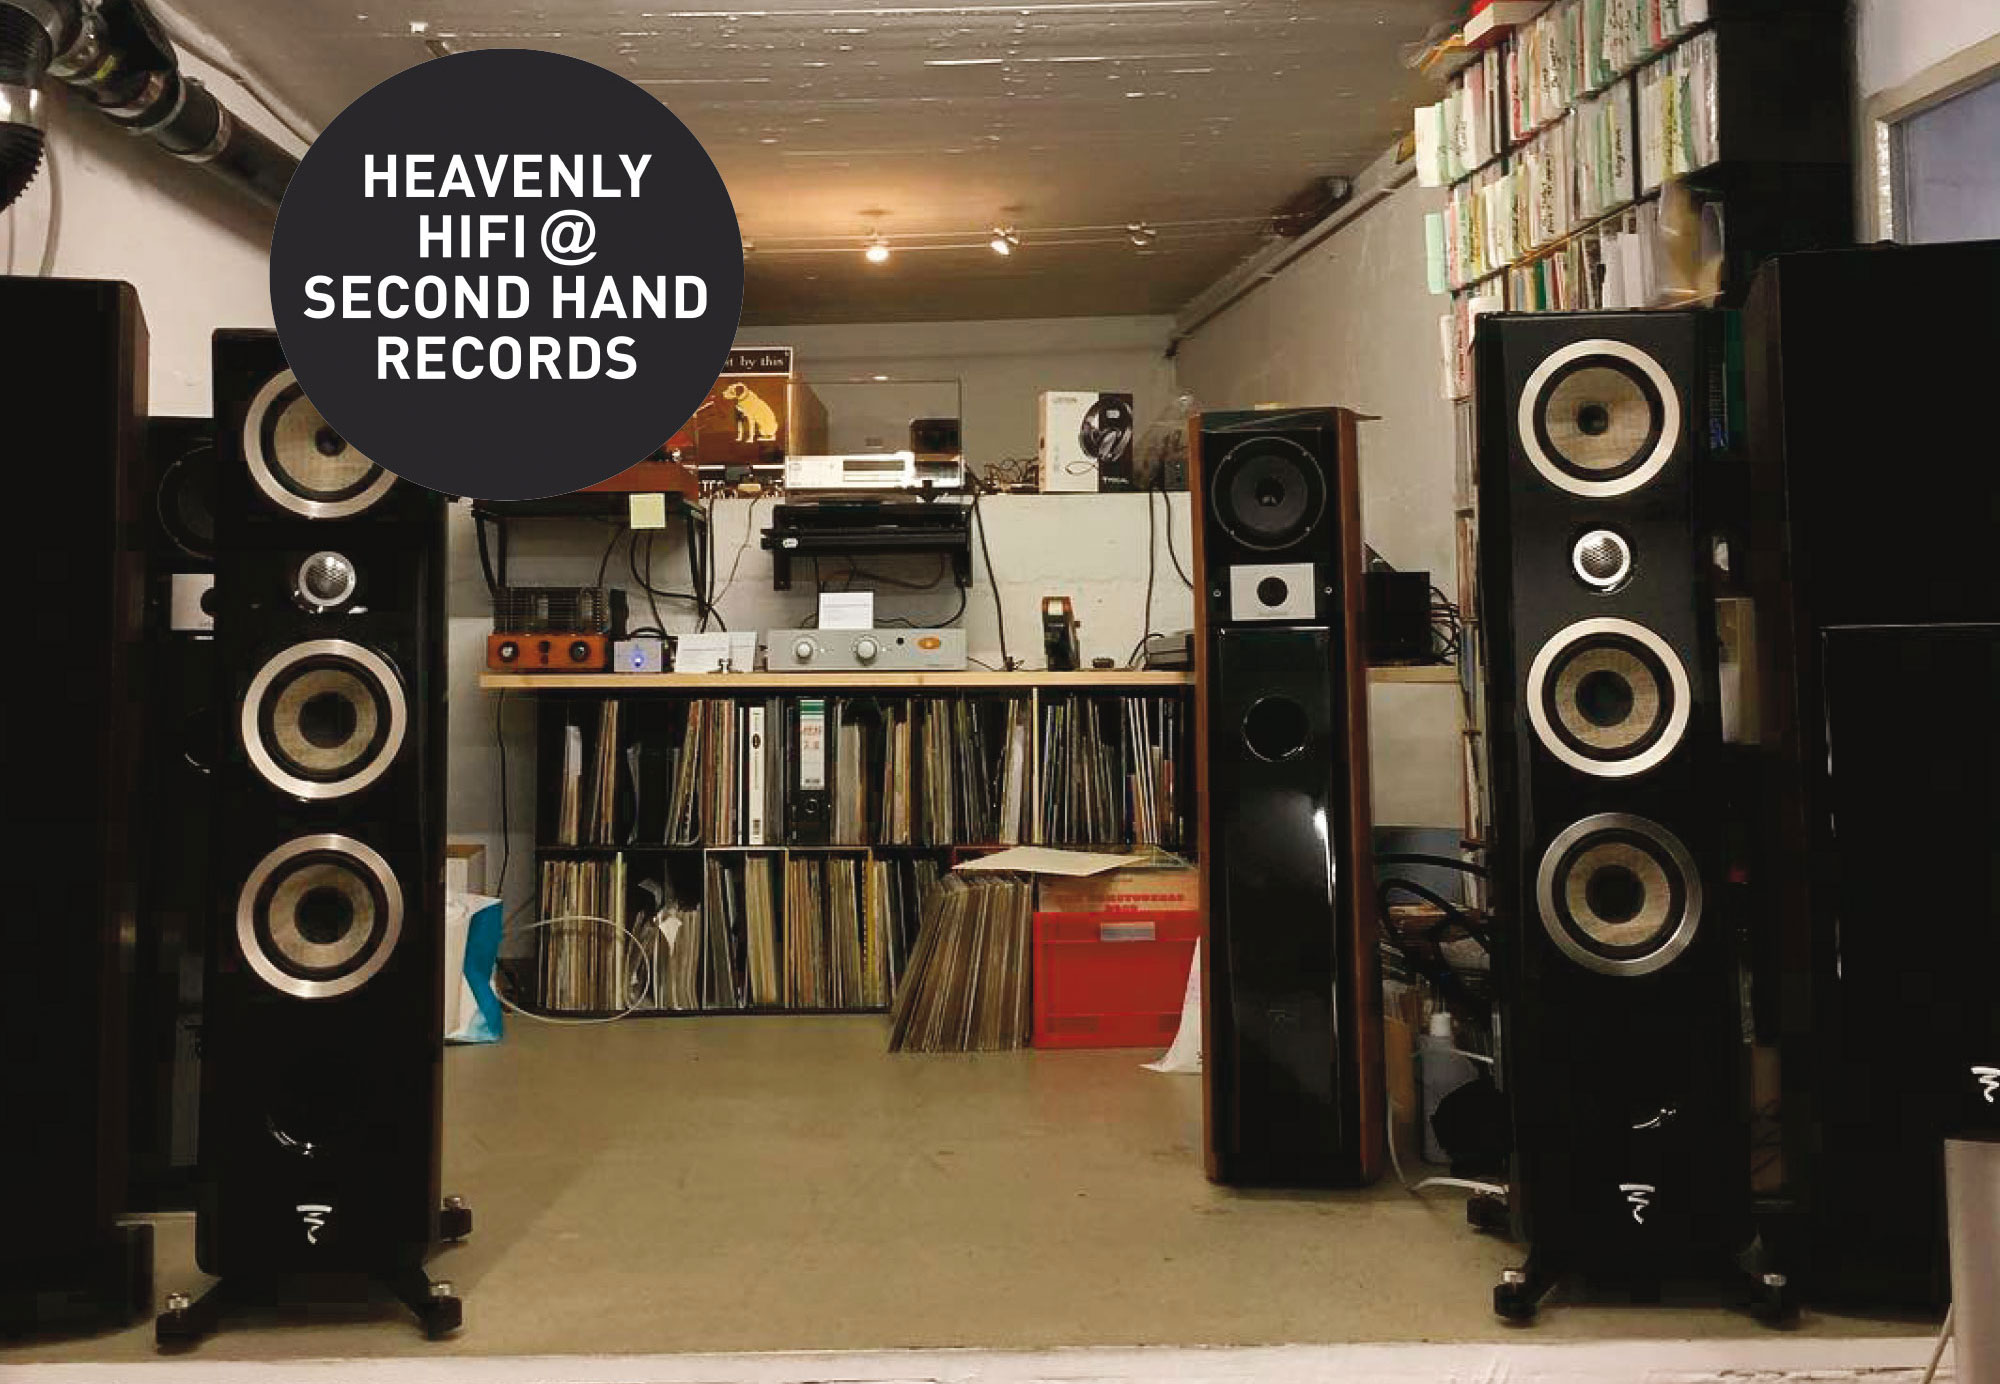 SECOND HAND RECORDS Heavenly-Hifi